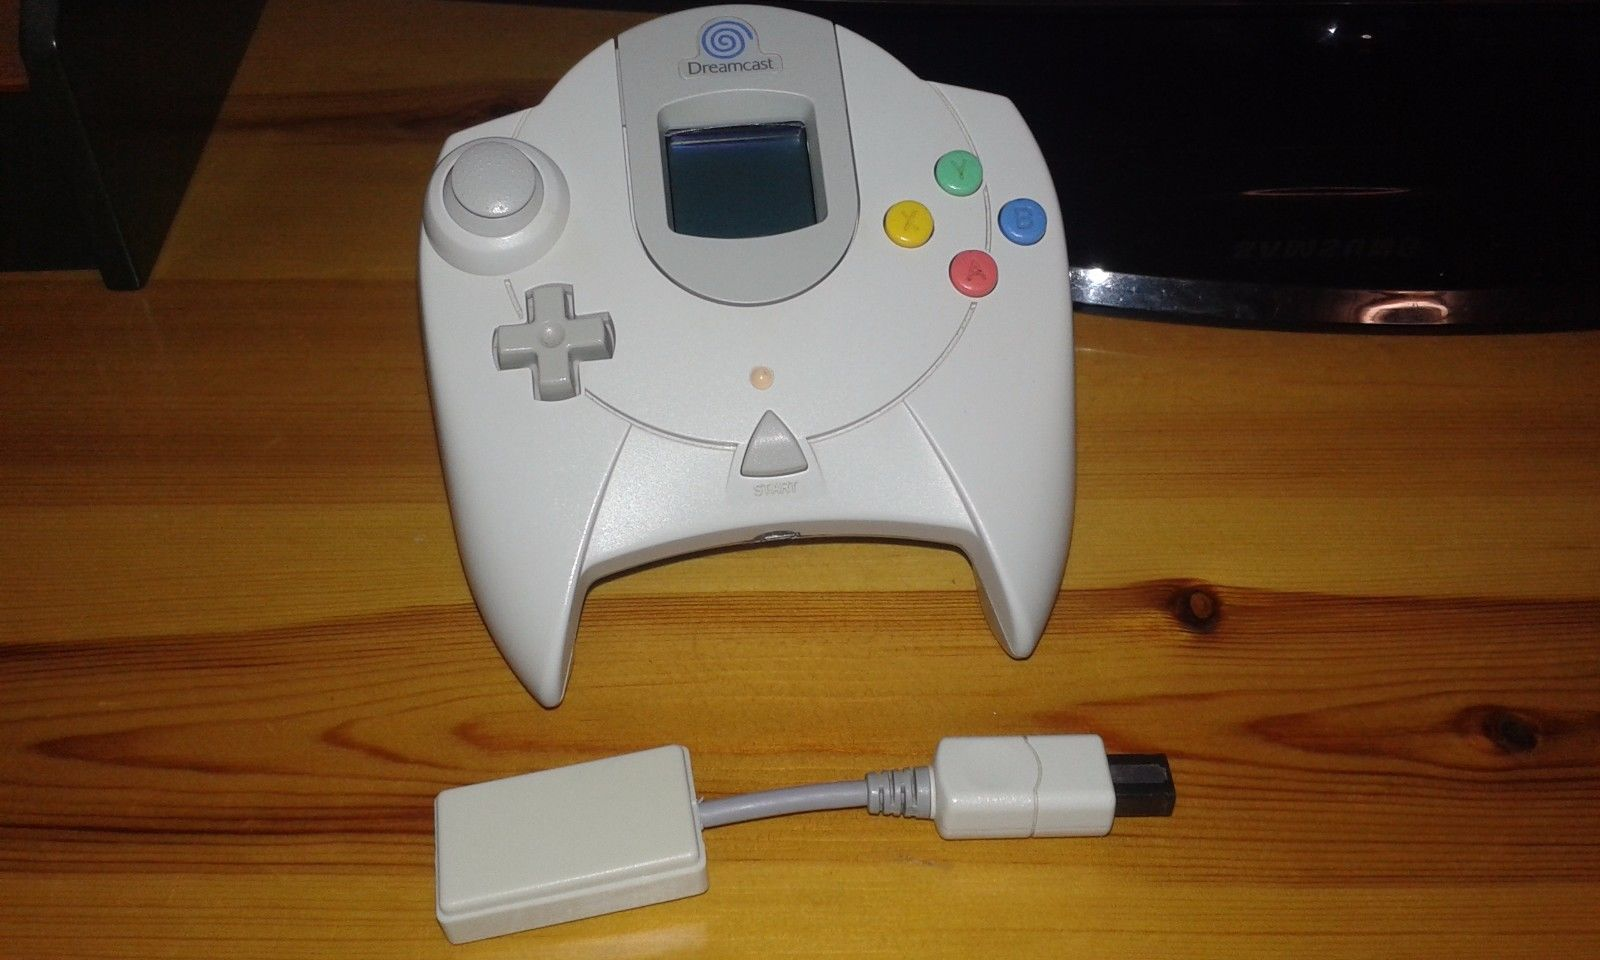 Dreamconn Wireless Dreamcast Controller Vgmoz